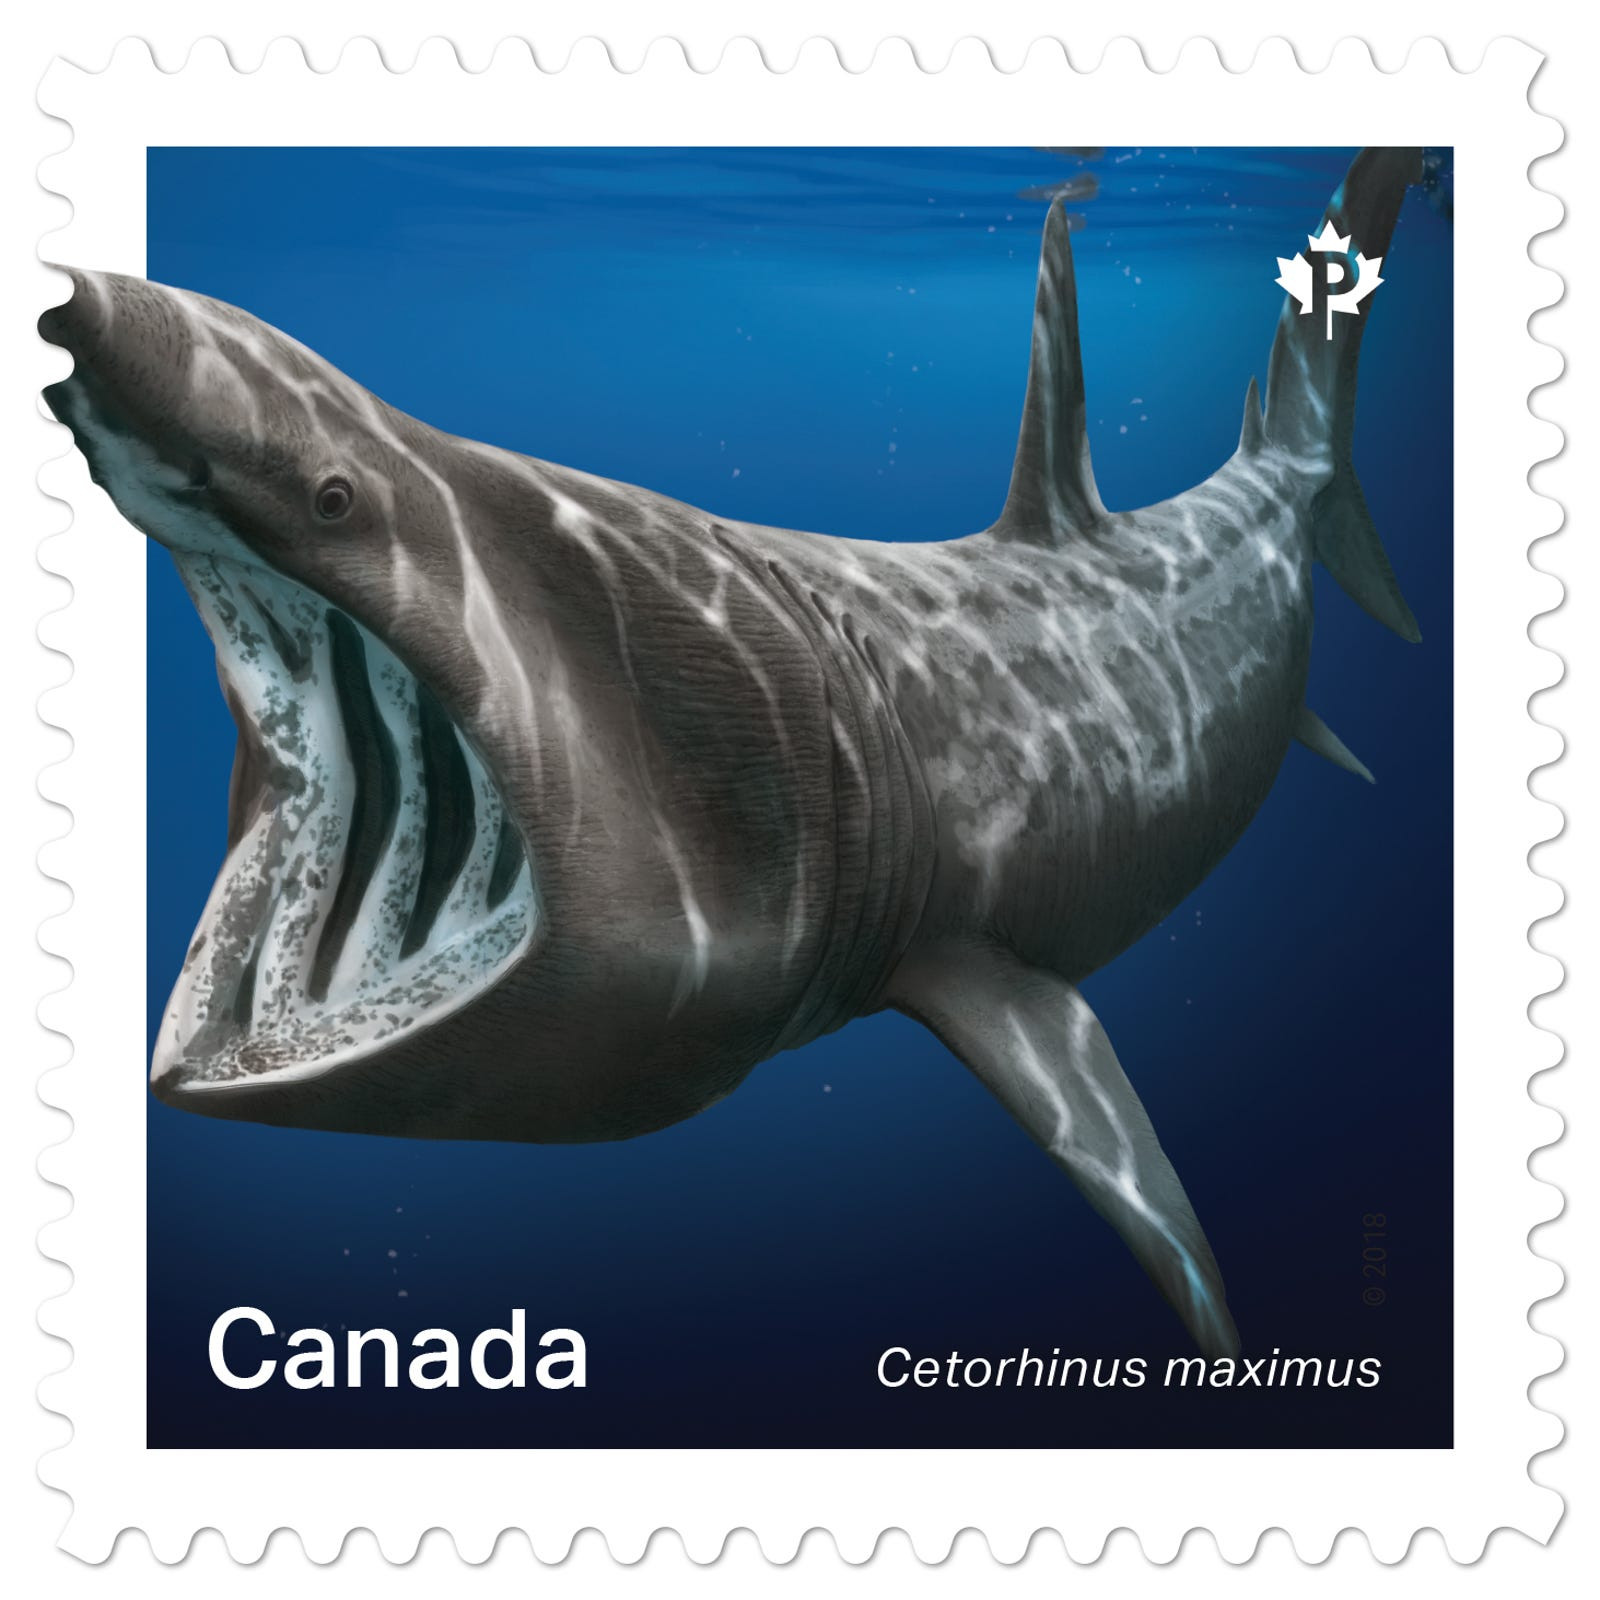 A basking shark